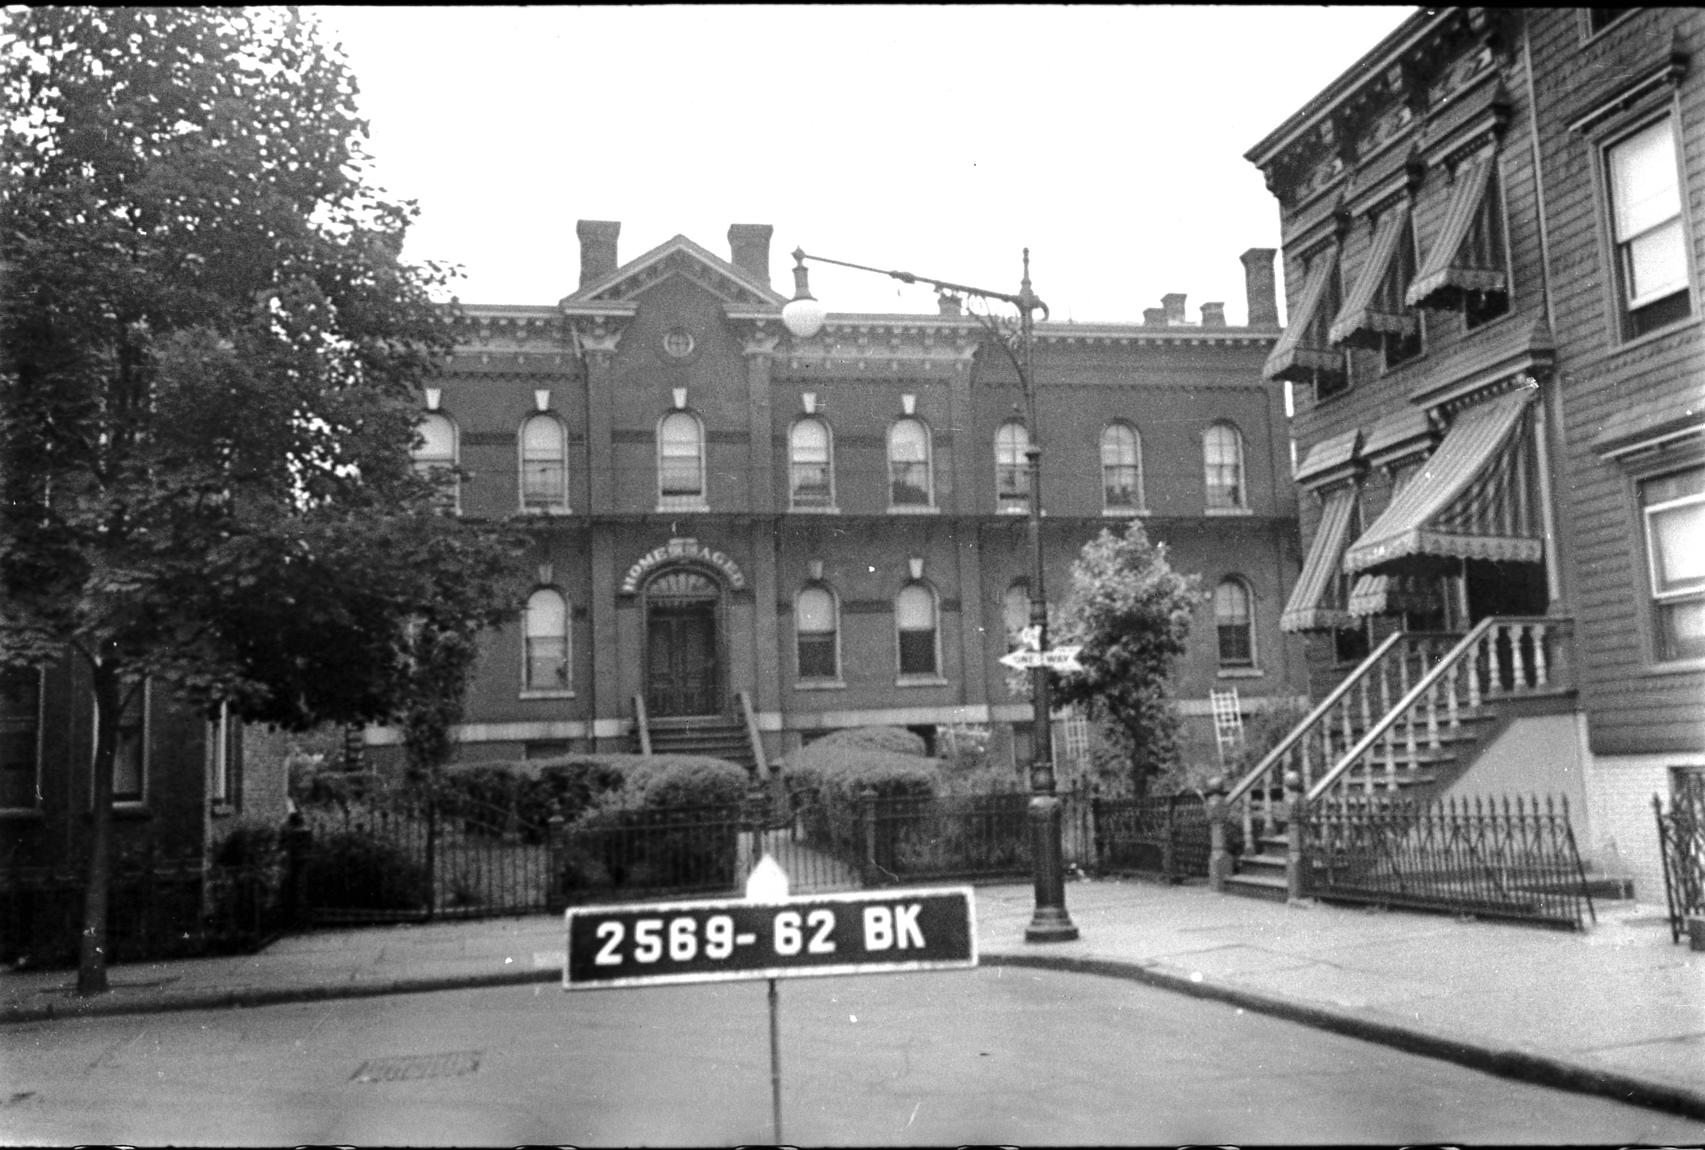 Undated tax photo showing 218 Guernsey Street on the corner